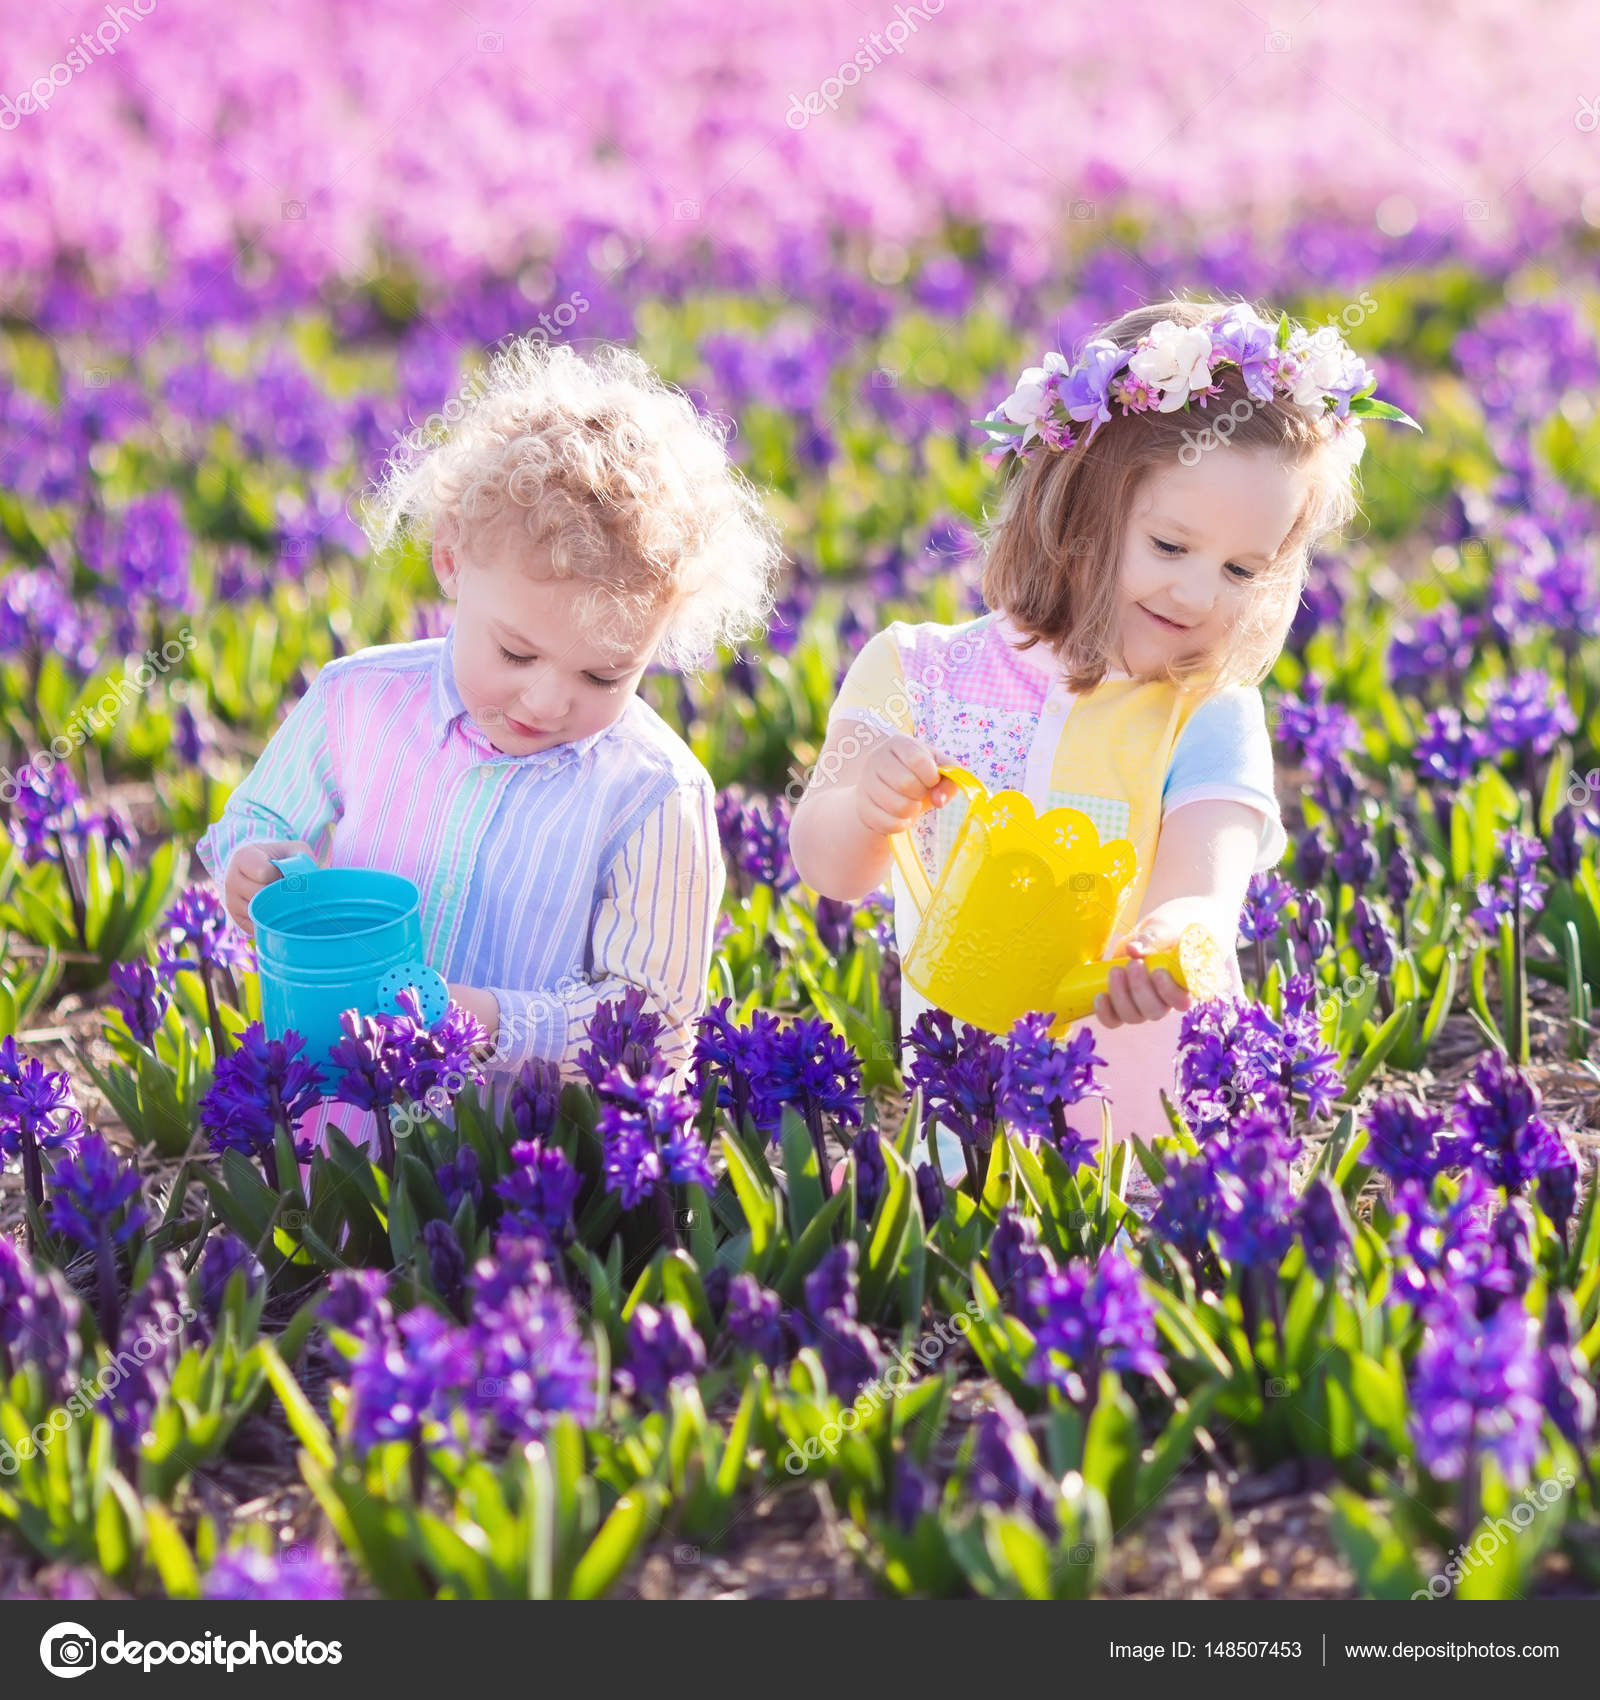 Kids plant and water flowers in spring garden stock photo children planting spring flowers in sunny garden little boy and girl gardener plant hyacinth daffodil snowdrop in flower bed gardening tools and water mightylinksfo Choice Image